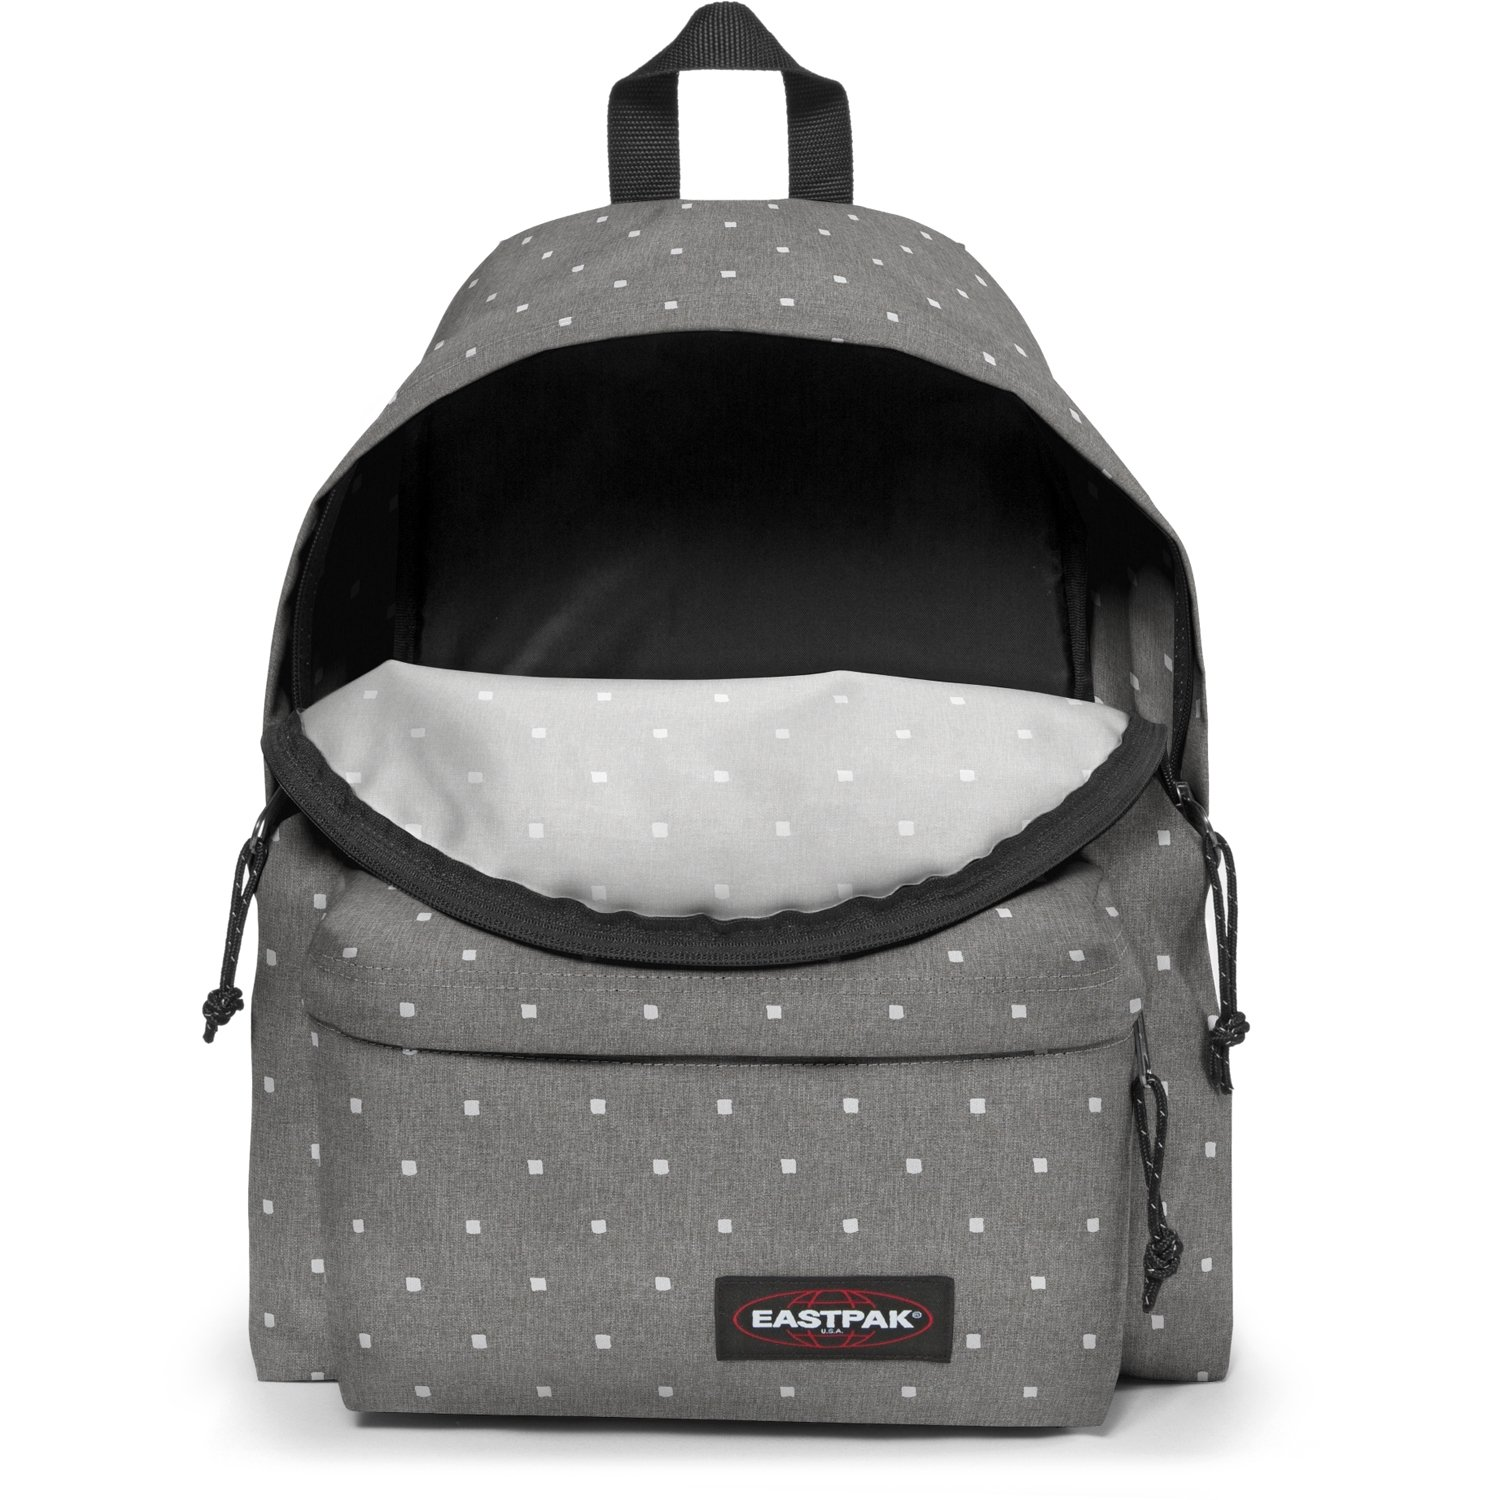 Populaire Eastpak Sac a Dos Padded White squares: Amazon.fr: Bienvenue EY29